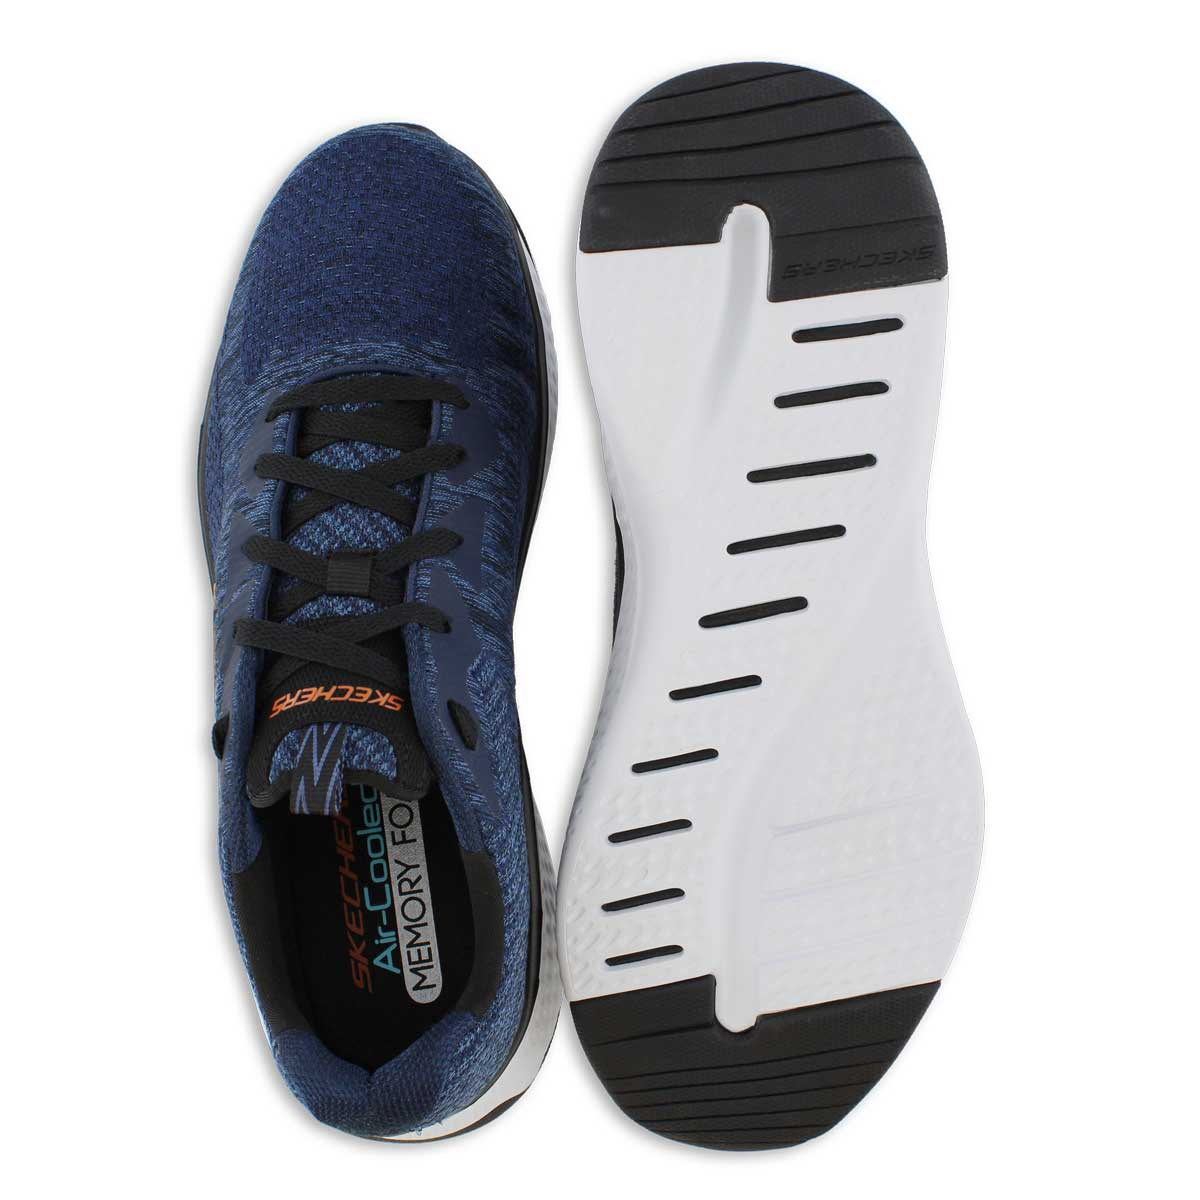 Mns Solar Fuse nvy/blk lace up sneaker